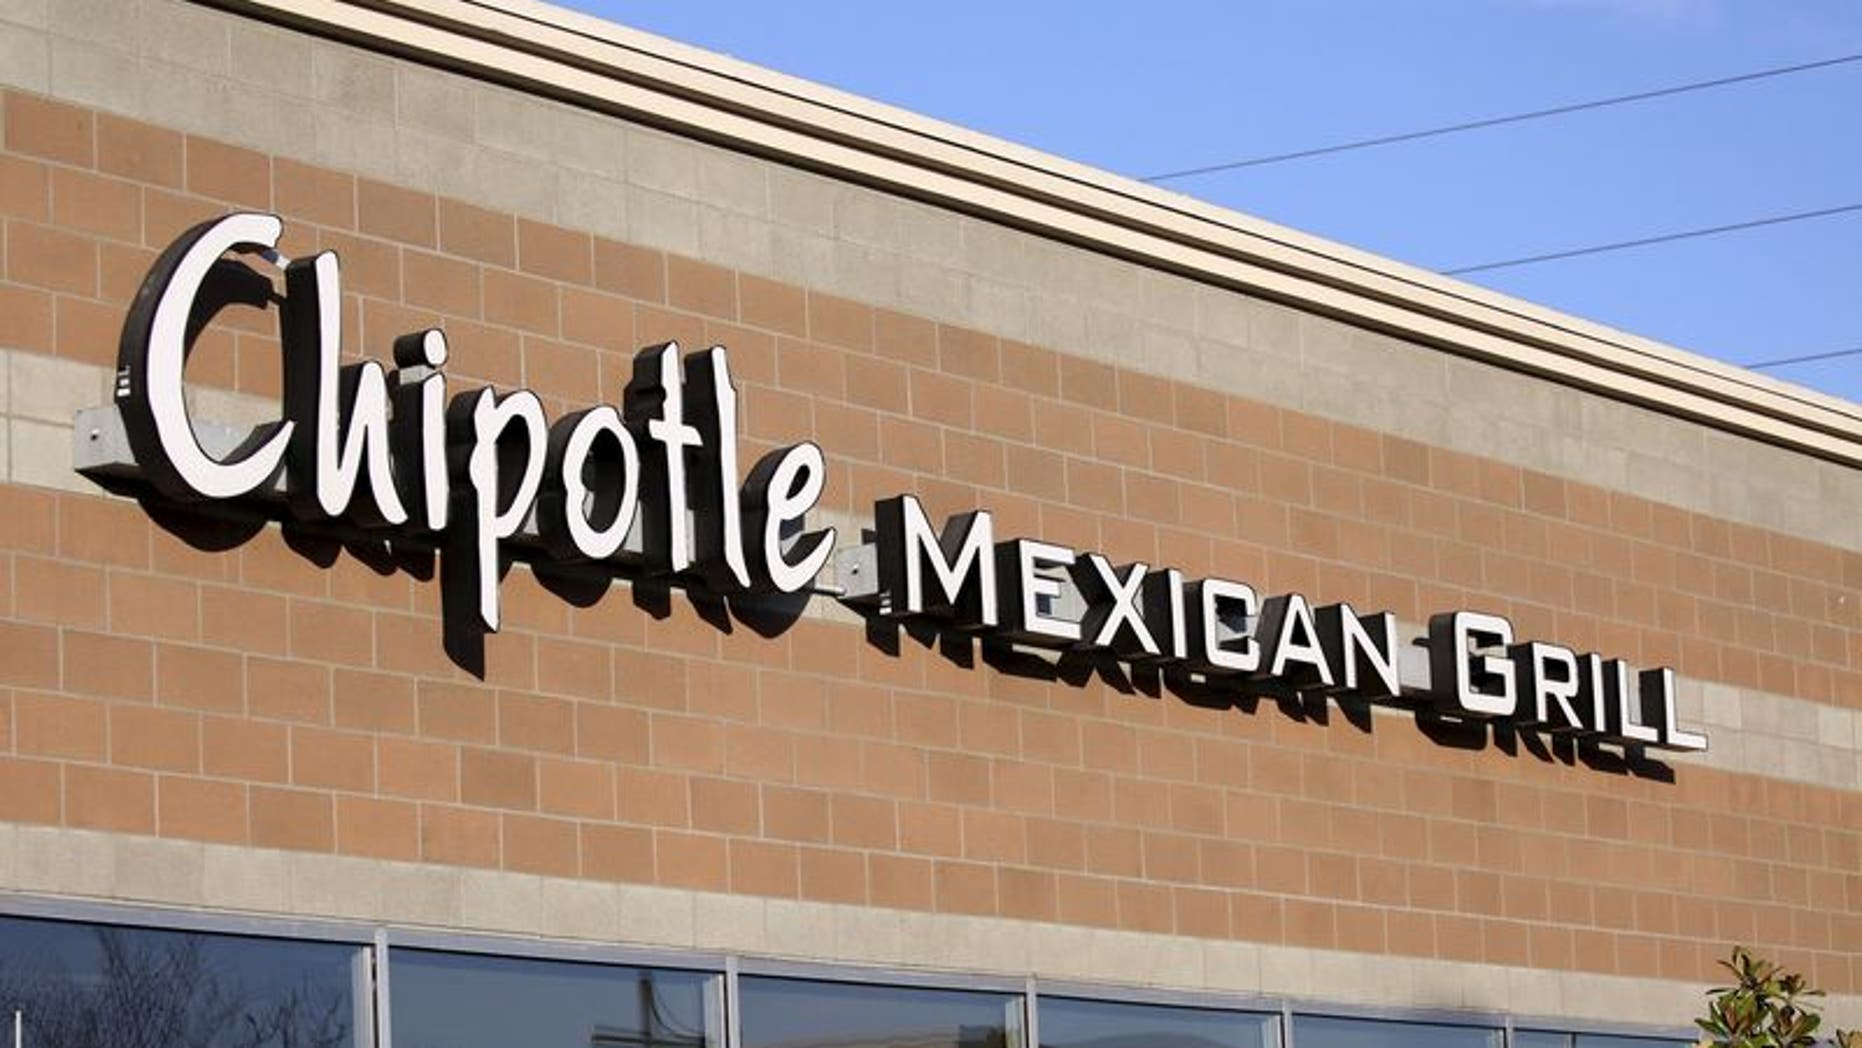 A Chipotle restaurant is shown in Federal Way, Washington in this November 20, 2015 file photo. REUTERS/David Ryder/Files